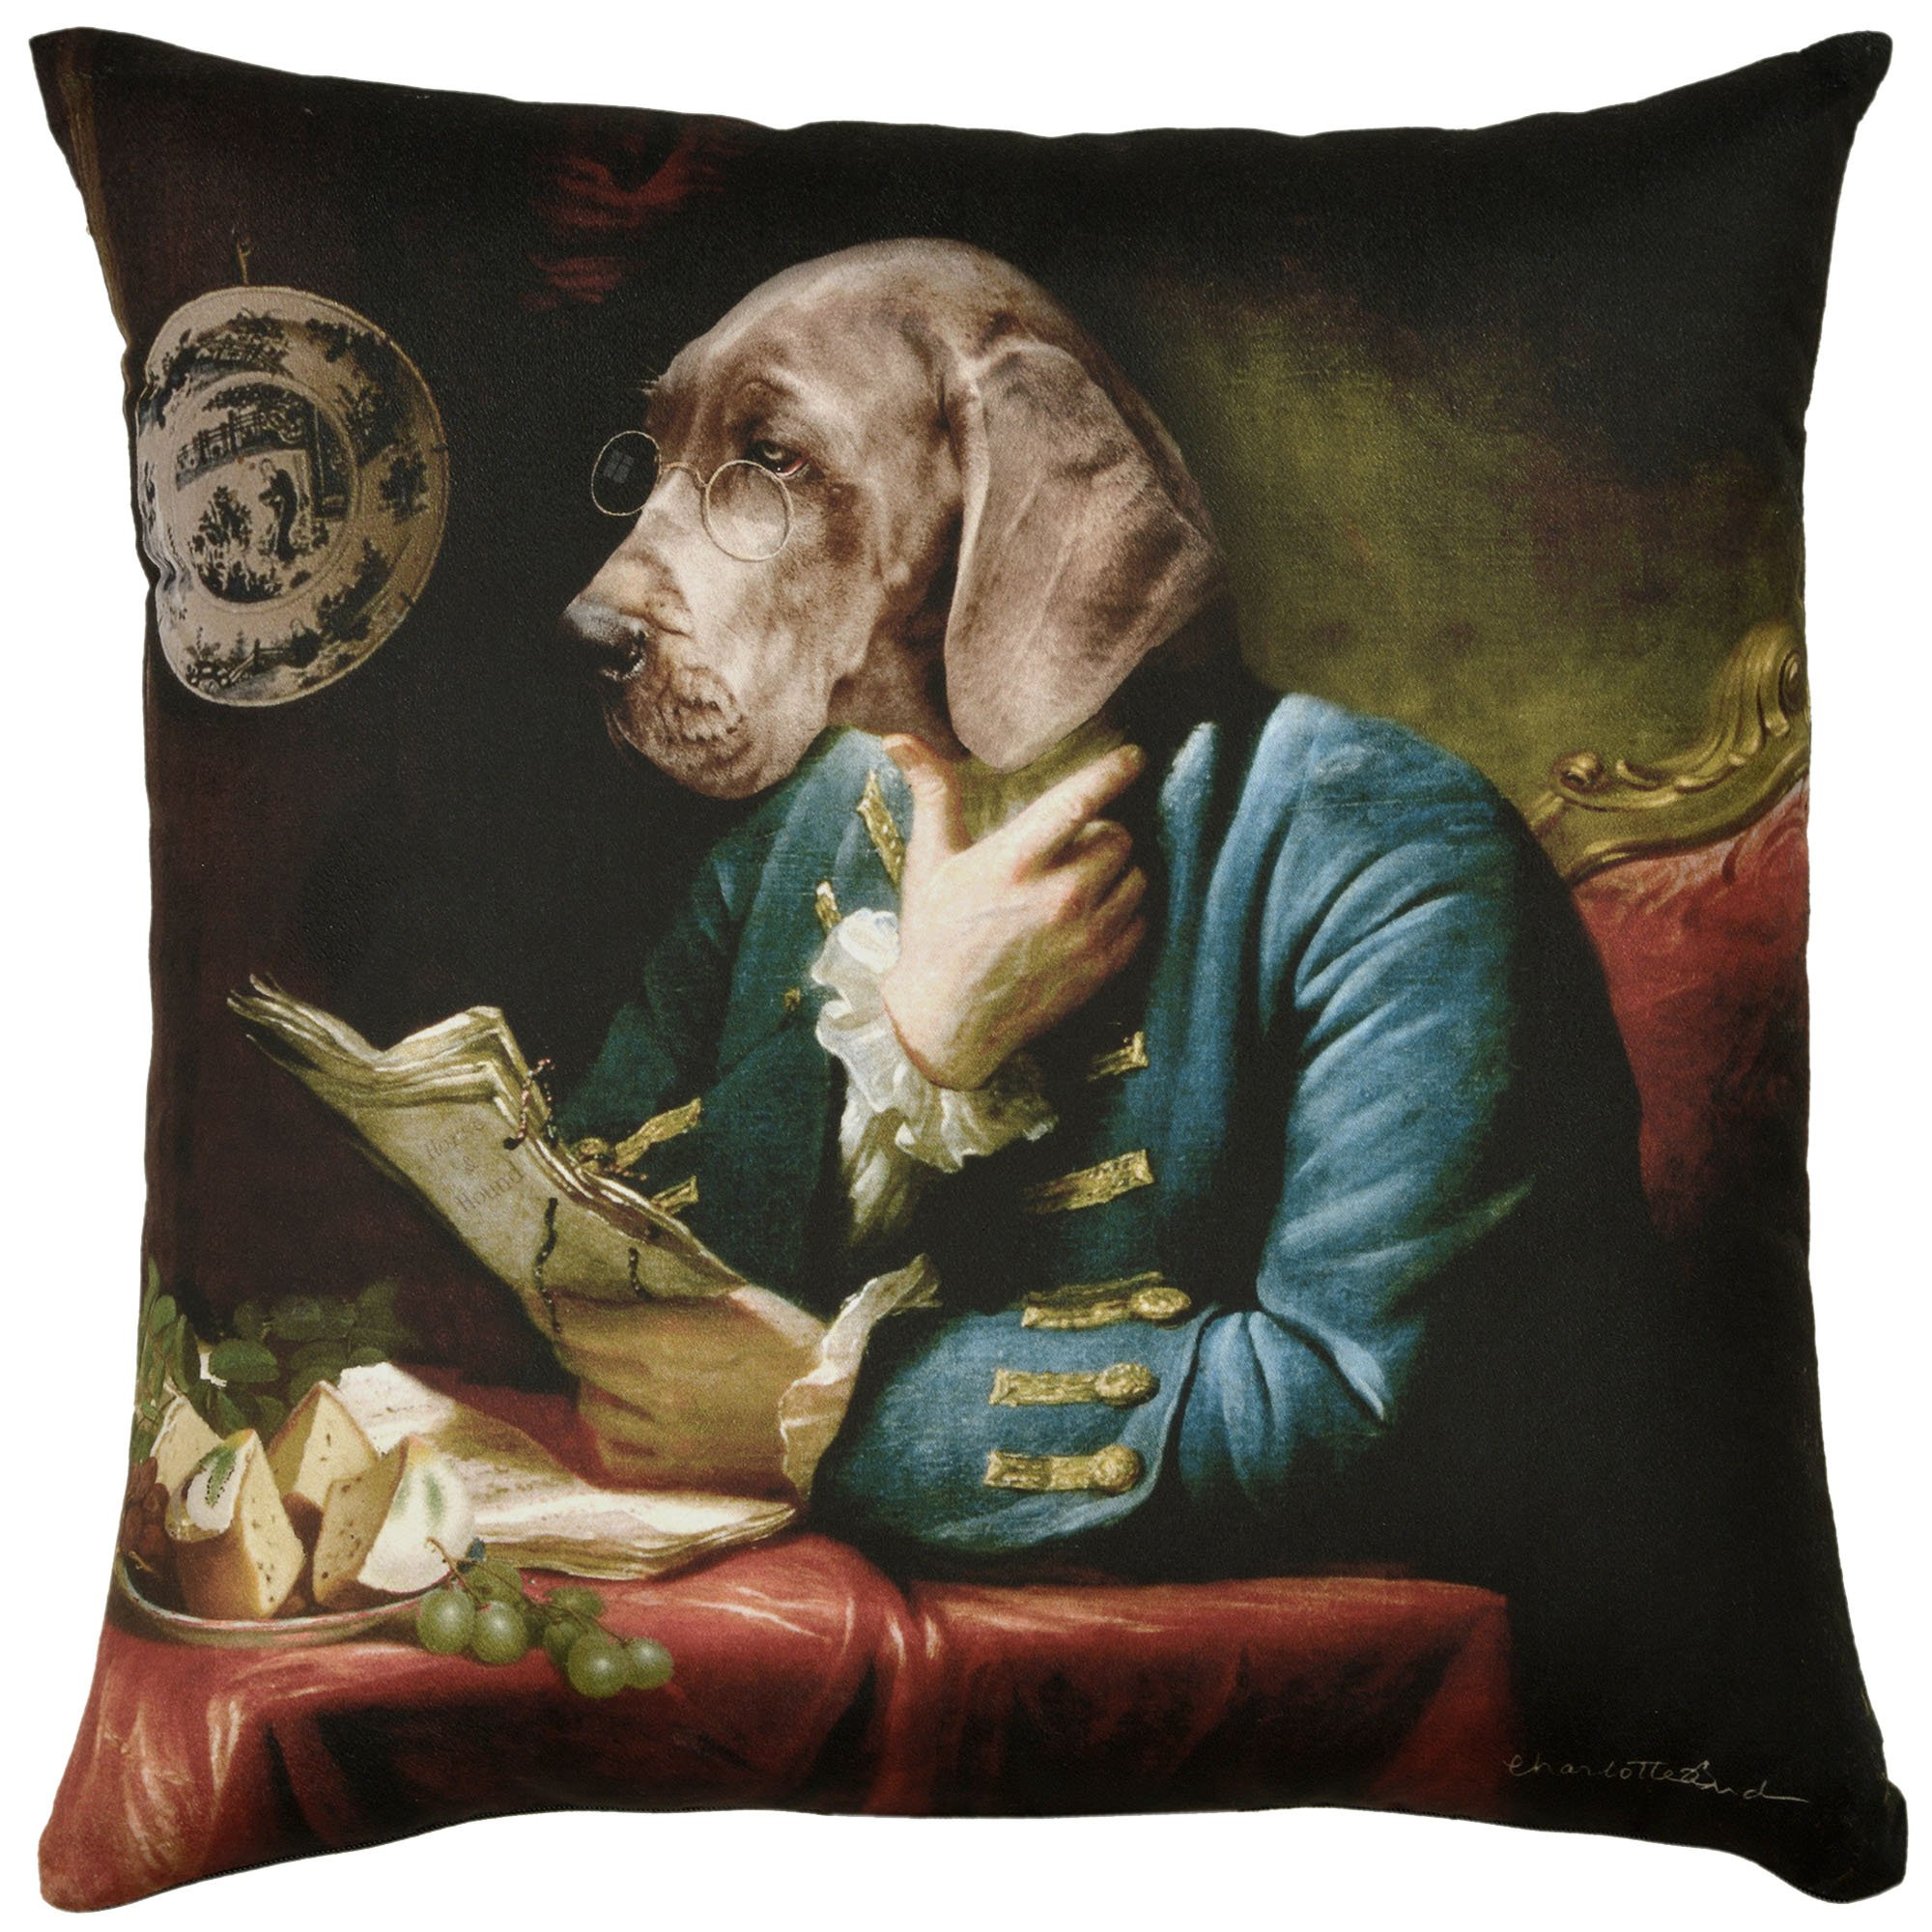 ADORABELLA Pantomime Animals Collection - Soft Touch Velvet Printed Pillow - Great Dane Design 17'' x 17'' Square Throw Pillow Home Decor Scatter Cushion - Complete With Insert